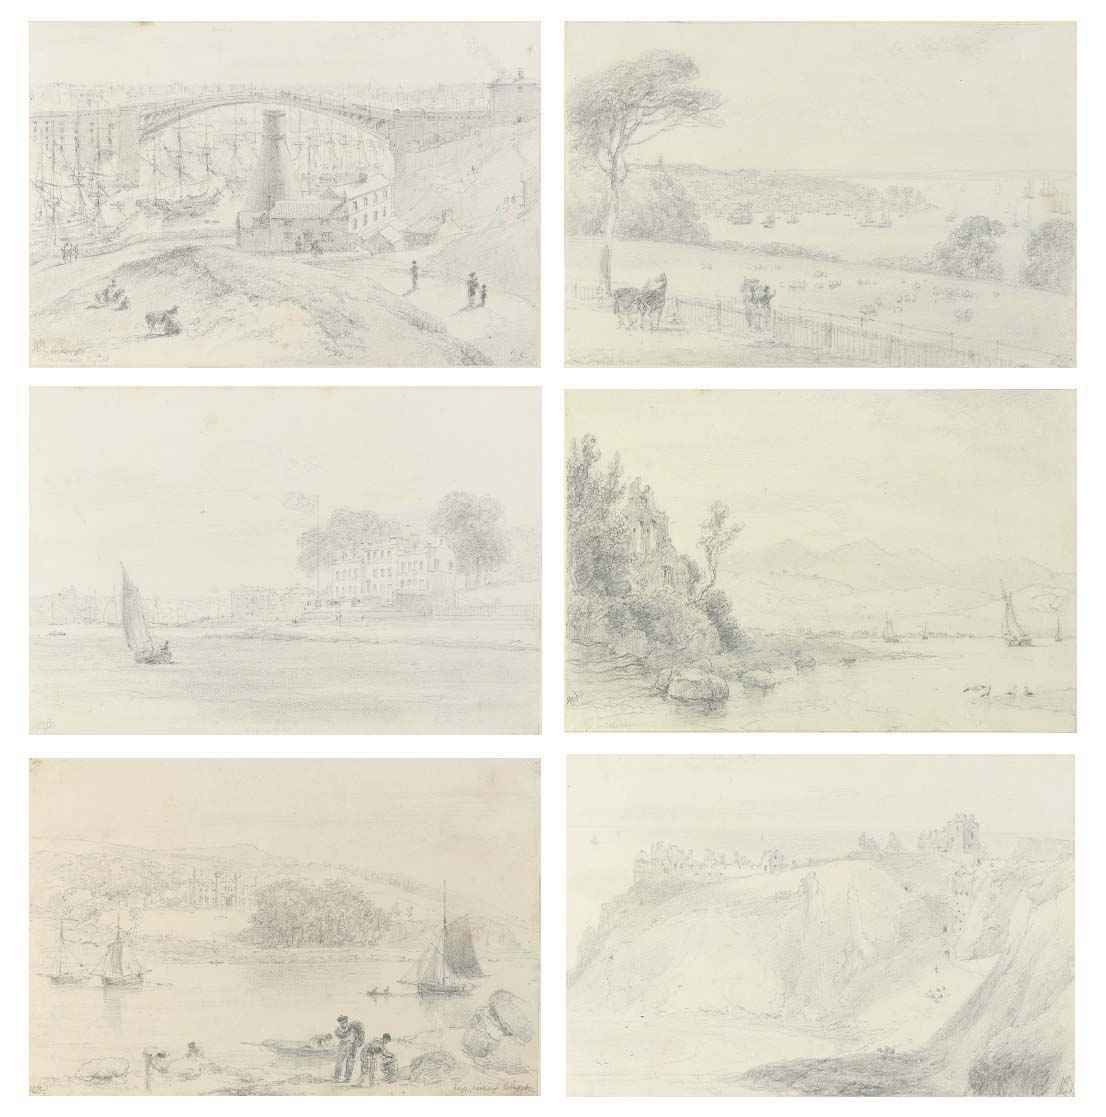 An album of ninety-seven drawings including views of Dunstanborough Castle, Northumberland; the bridge across the River Tyne, Sunderland (fig. 1); Eastbourne, Sussex; Hurst Castle, West Cowes (figs. 2 and 3) and near Blackwater, the Isle of Wight; Lyme Regis and Bow and Arrow Castle, Dorset; Woodville, Devon; Falmouth and Tregothan, Cornwall; Dunster Castle (fig. 5), Minehead and the Valley of Stones, Somerset; Cader Idris, Beaumaris, Flint Castle and Tan-y-bwlch, Wales; Silverdale and Chapel Island, Lancashire (fig. 4); and Ravenscraig Castle, Armadale Castle (fig. 6), the Shiant Isles, Forse Castle, the Man of Ord, Dunnottar Castle, and Slane Castle, Scotland